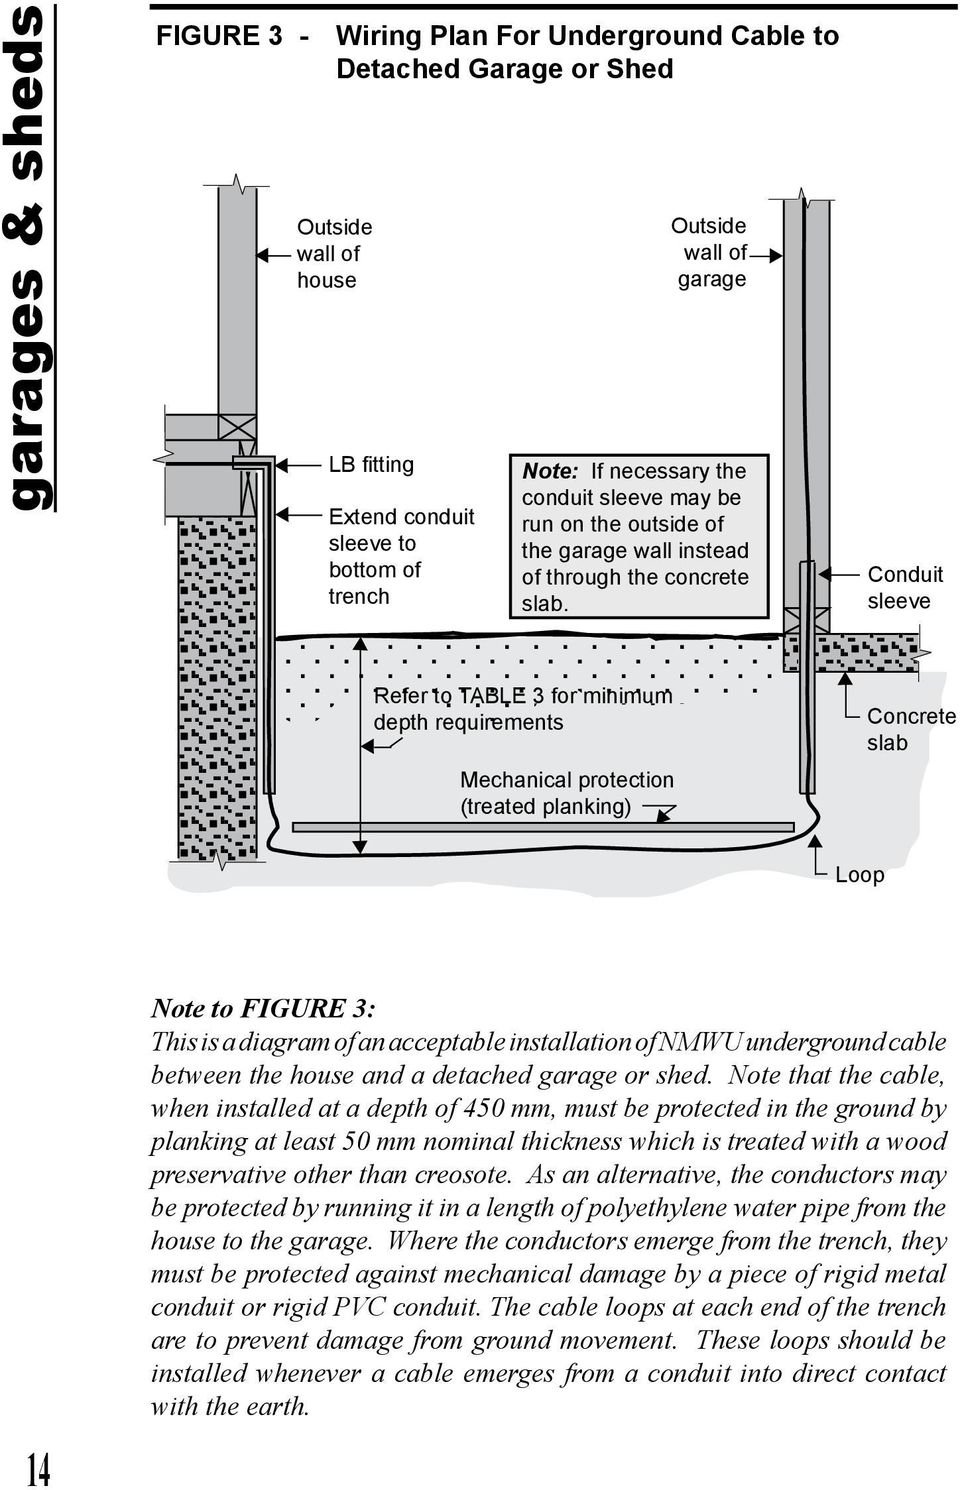 hight resolution of conduit sleeve refer to table 3 for minimum depth requirements mechanical protection treated planking